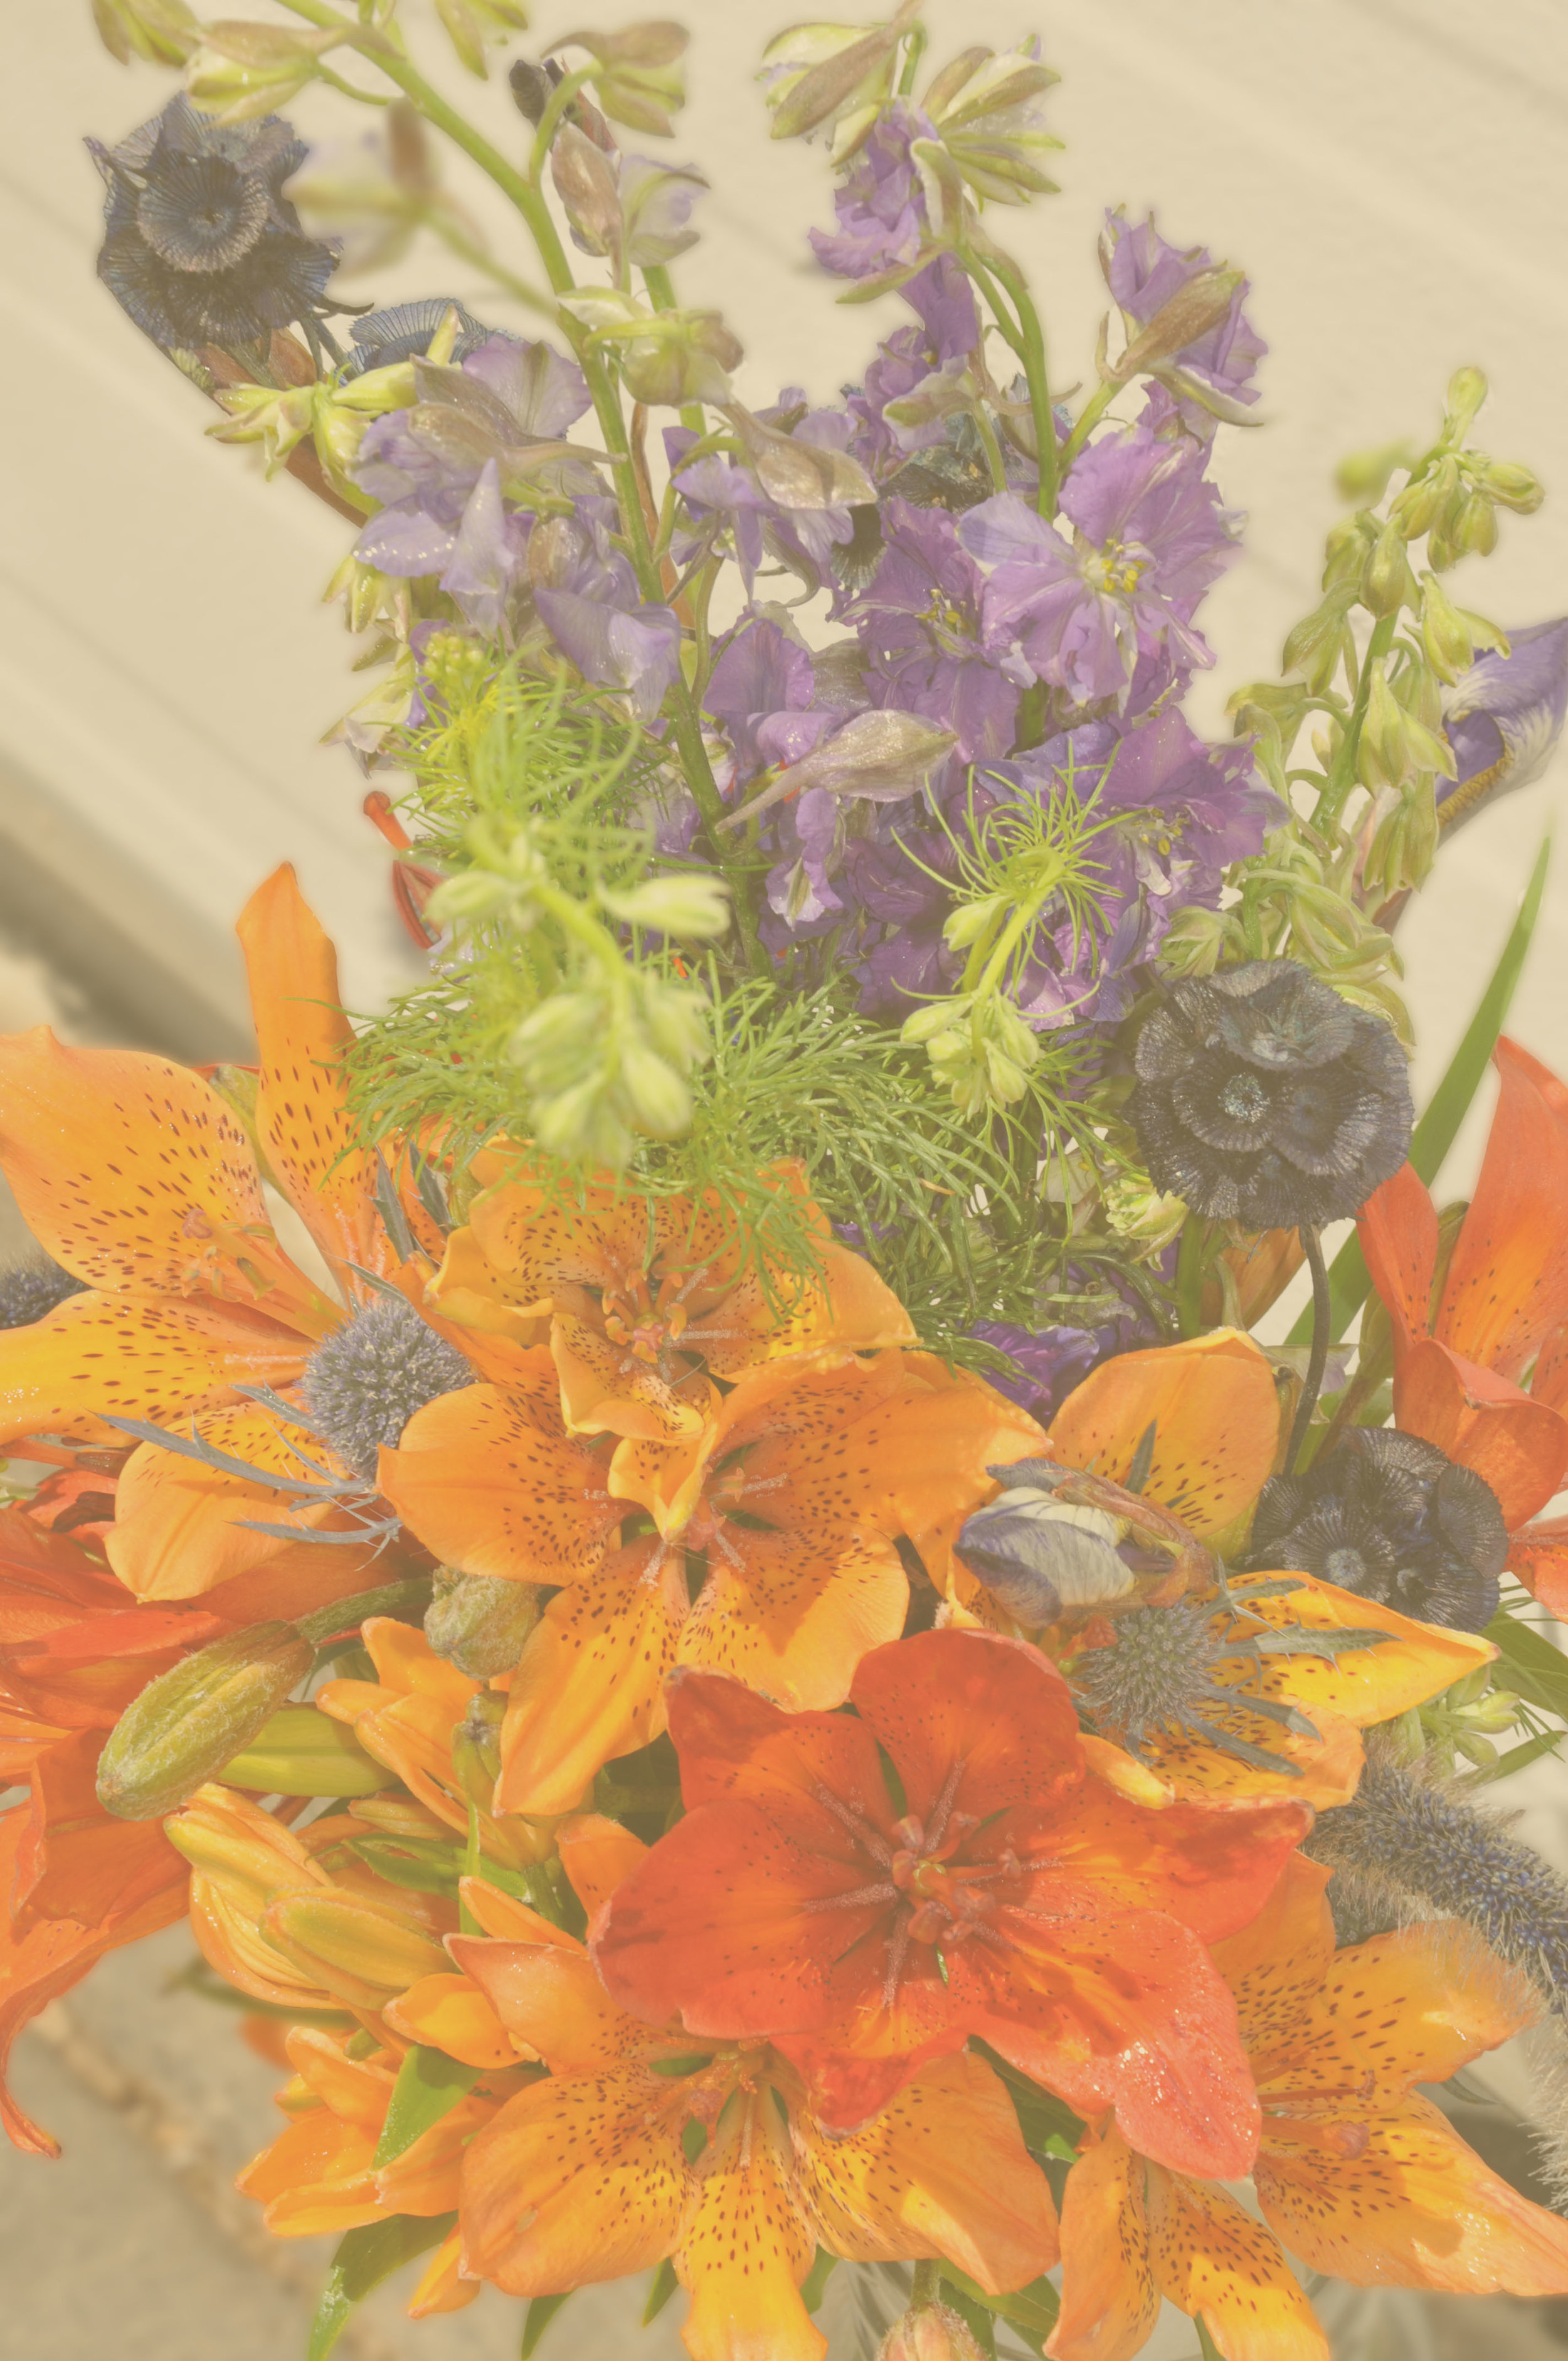 Subscription package B - In season flower arrangements in a vase8 deliveries - 2/monthJune 15-Sept.30$560 plus taxesPick up on farm - save $100